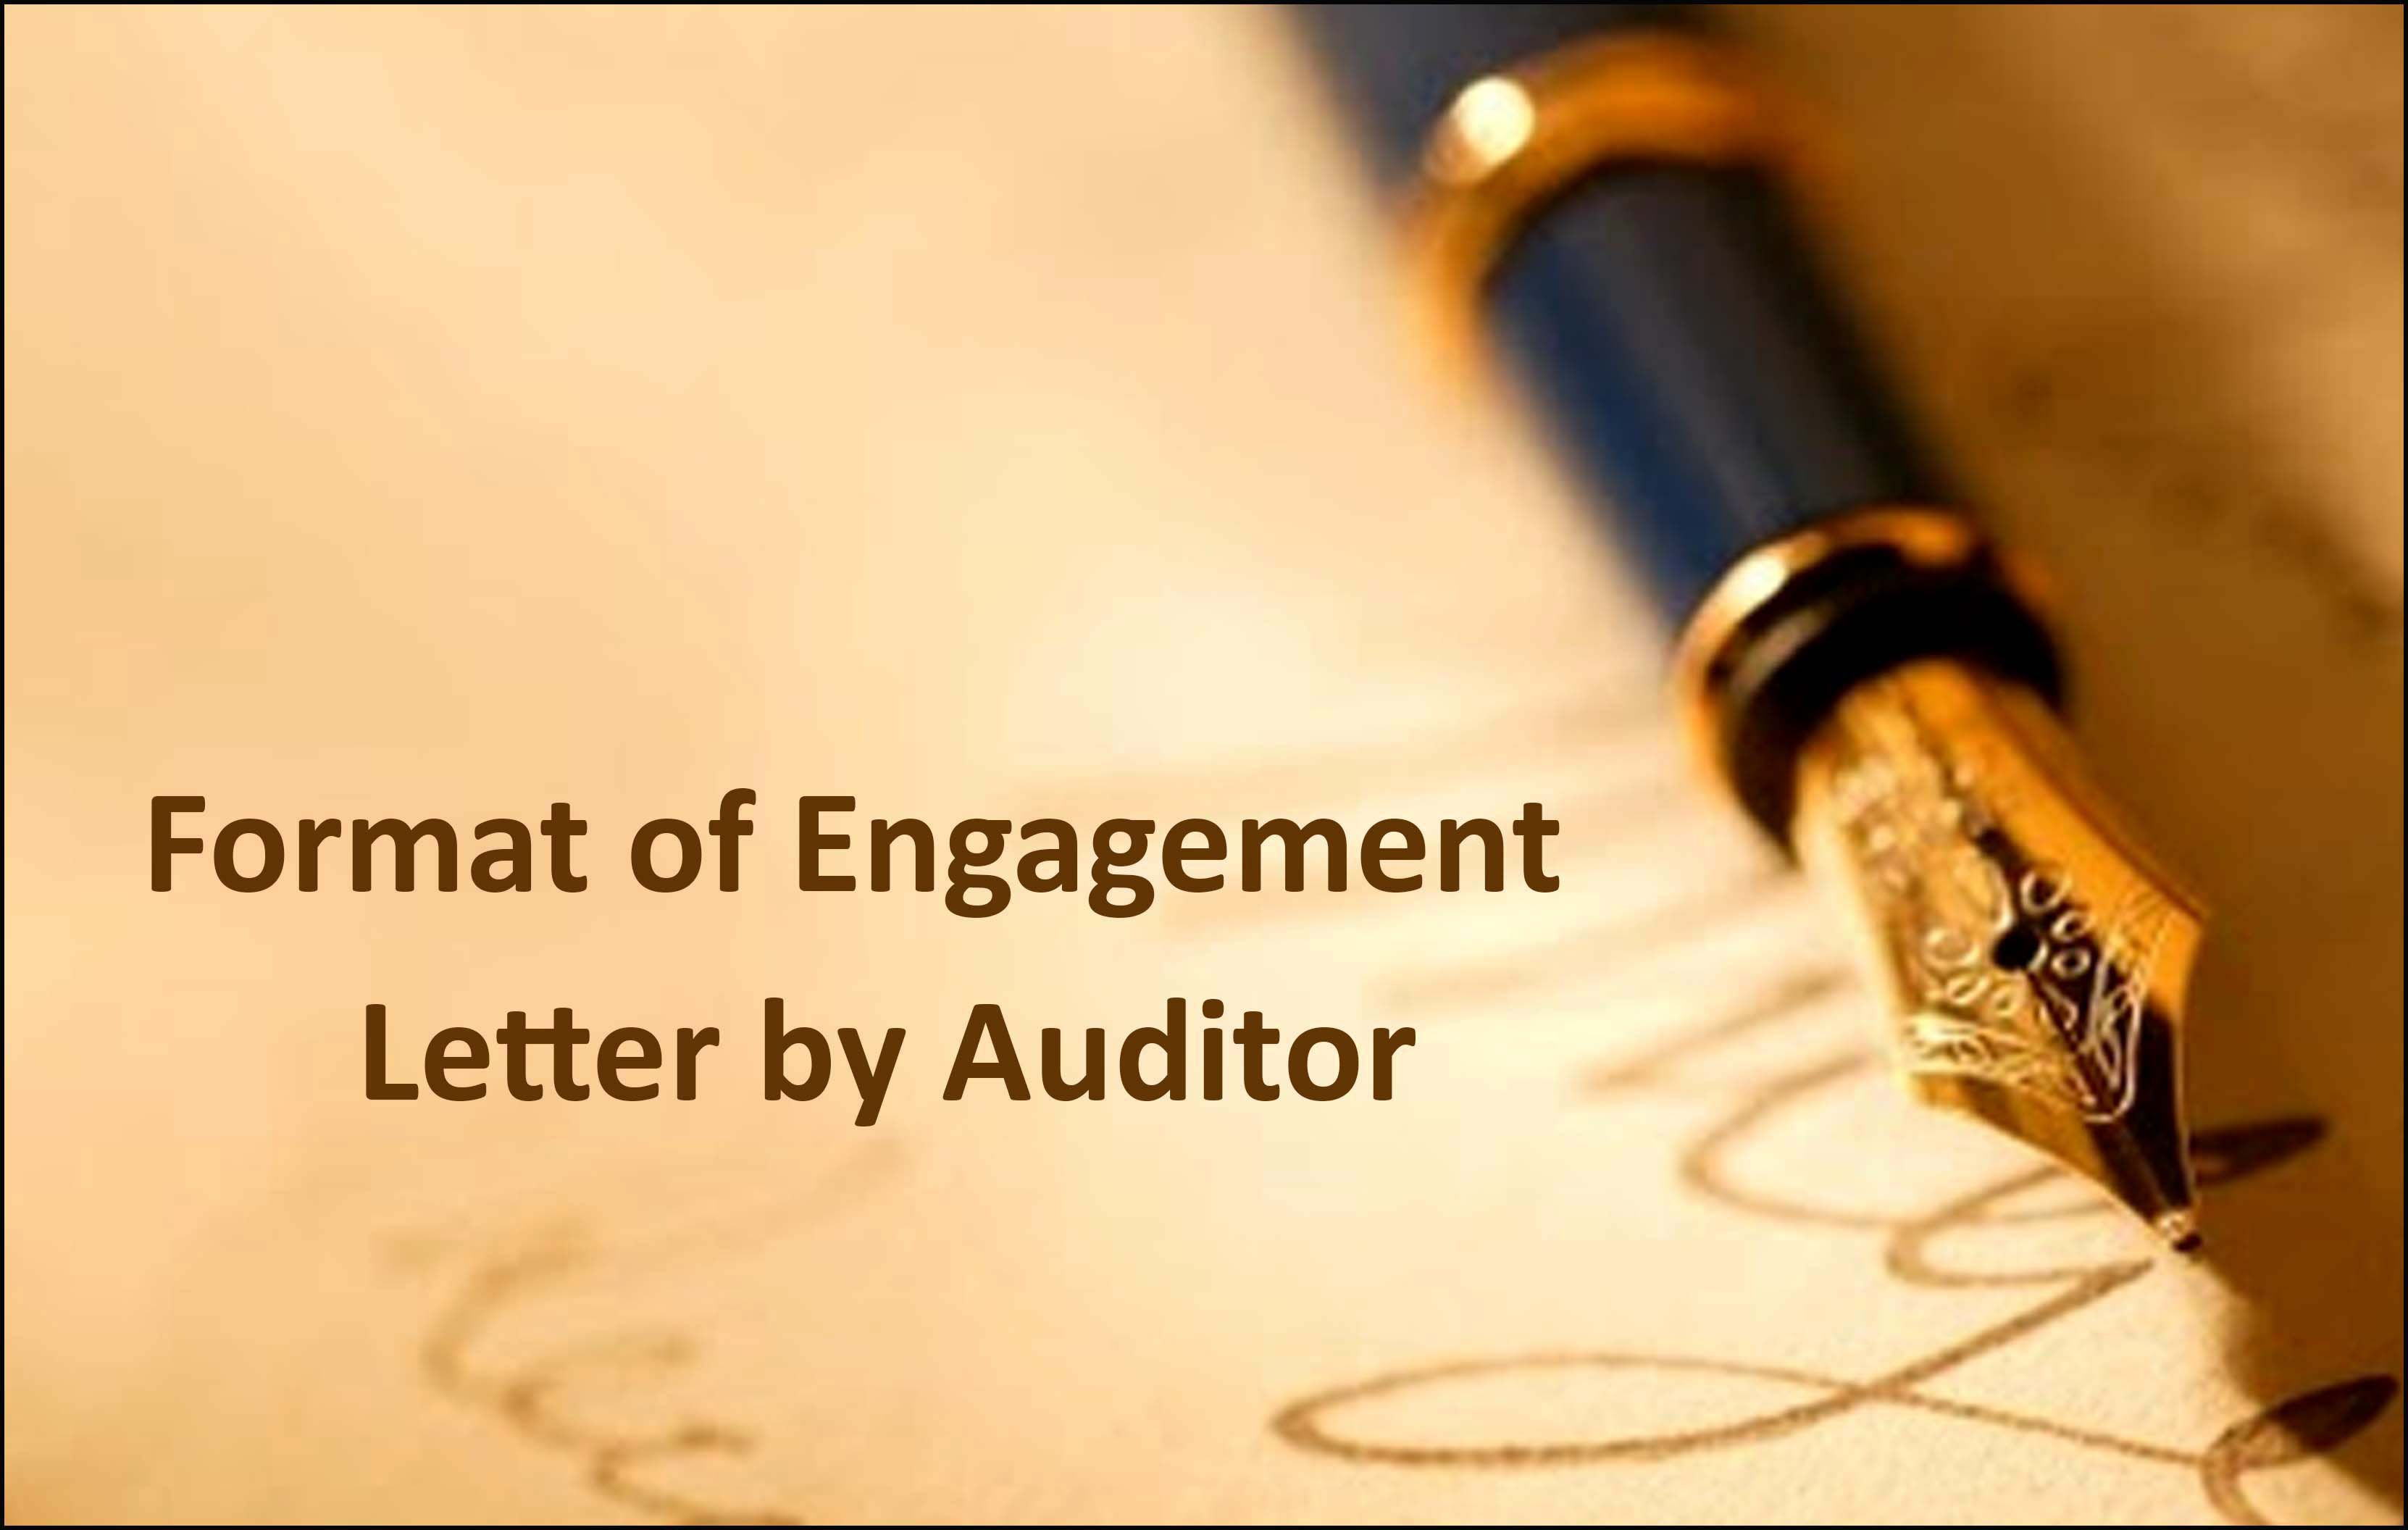 Format of Engagement Letter by Auditor